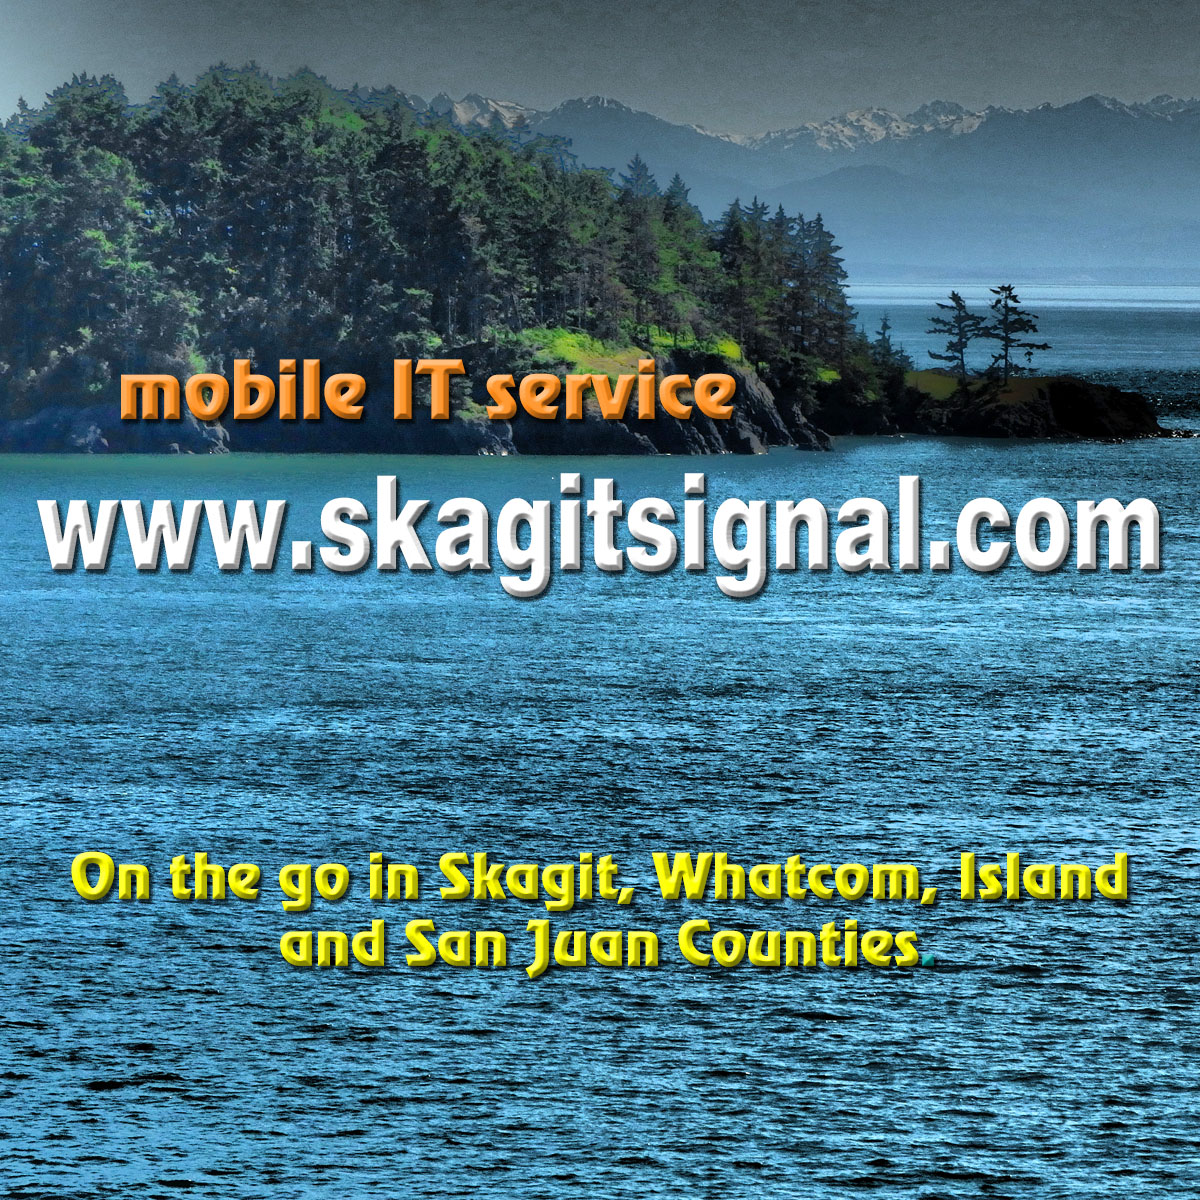 Skagit Signal serves residential and commercial customers throughout Skagit, Whatcom, Island and San Juan Counties